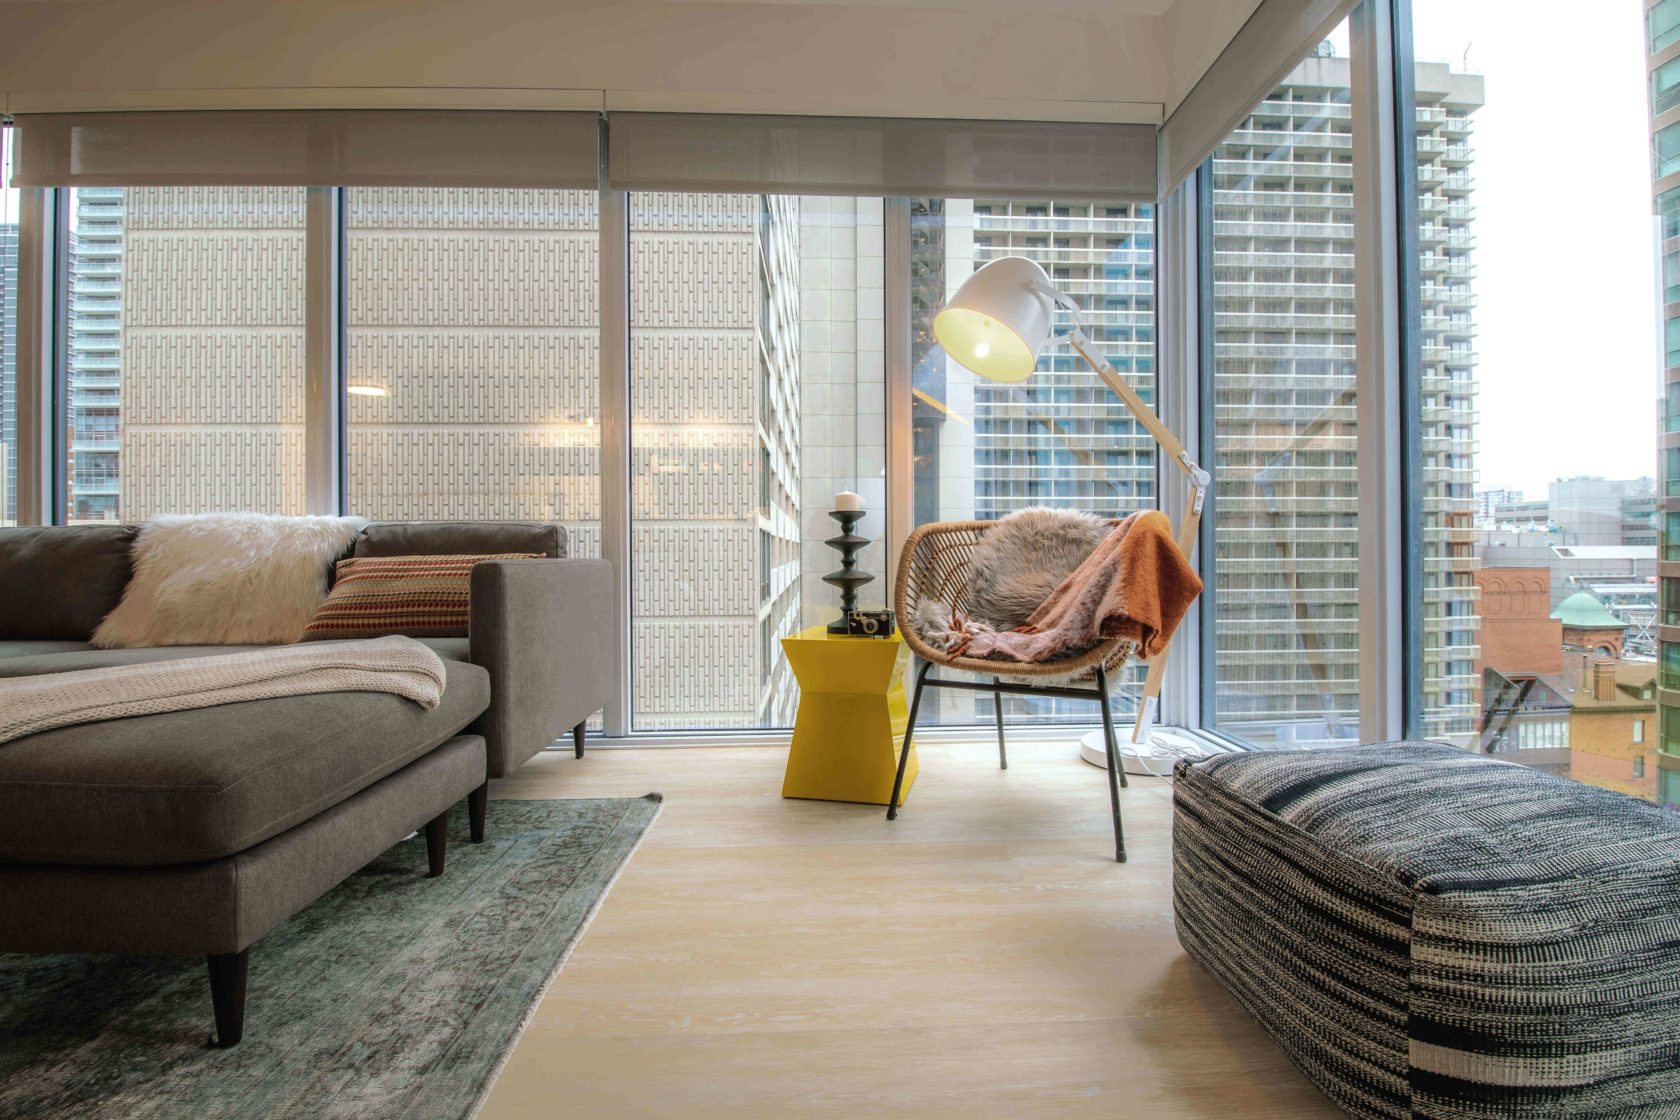 Livmore Suite Living room with cool floor lamp